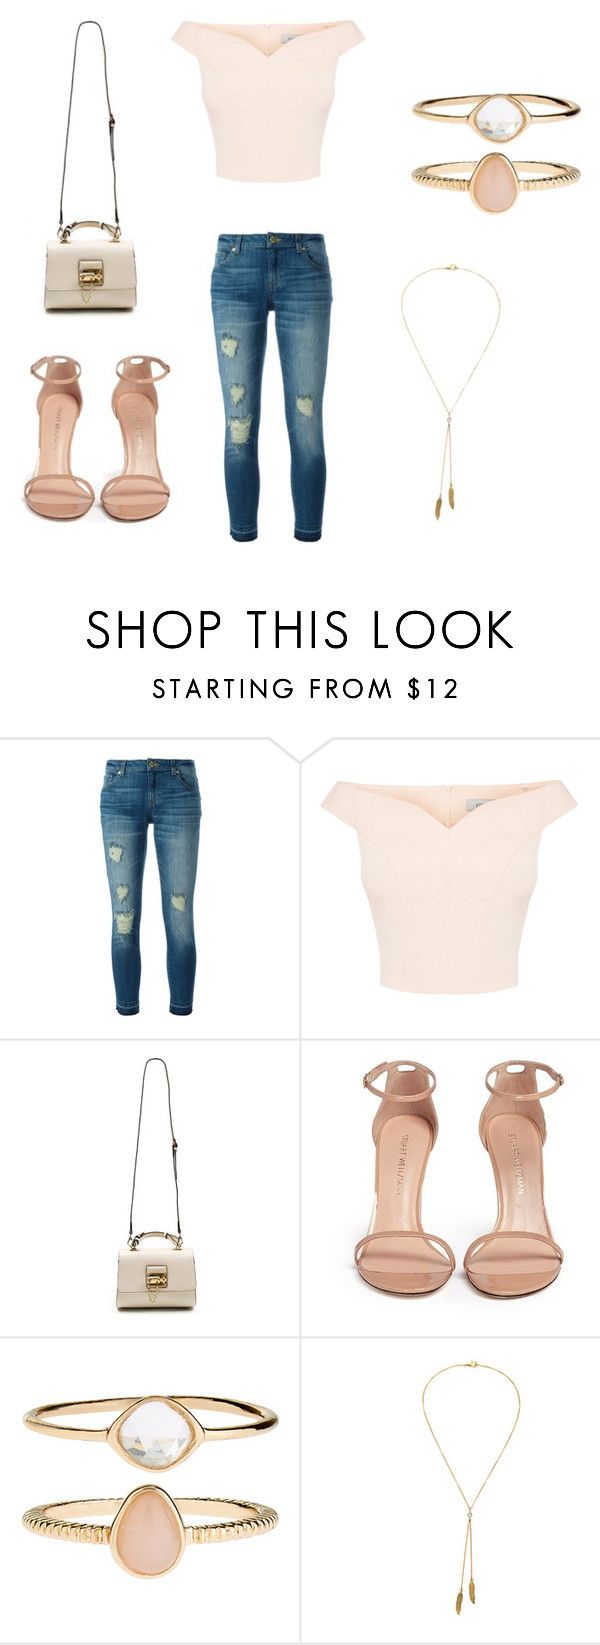 """""""STAYLEWE"""" by sabypolivore ❤ liked on Polyvore featuring MICHAEL Michael Kors, Stuart Weitzman, Accessorize and Bølo"""